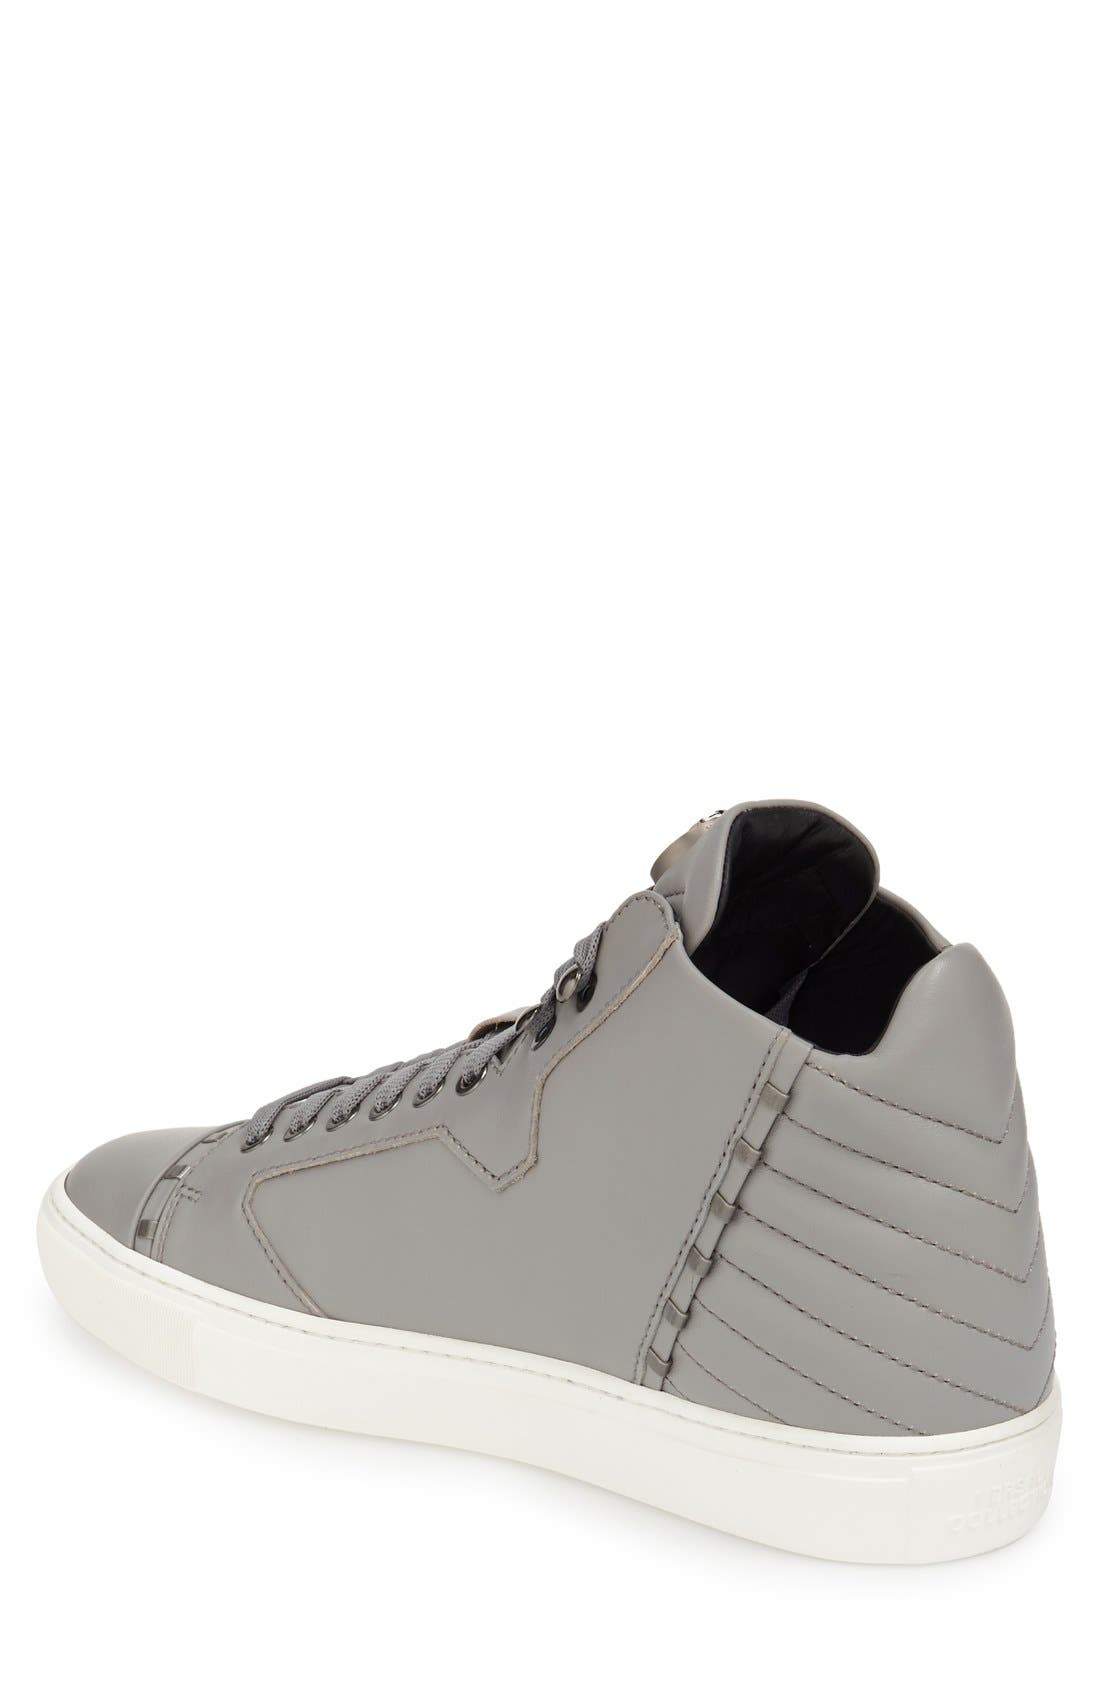 Alternate Image 2  - Versace Collection Leather High Top Sneaker (Men)